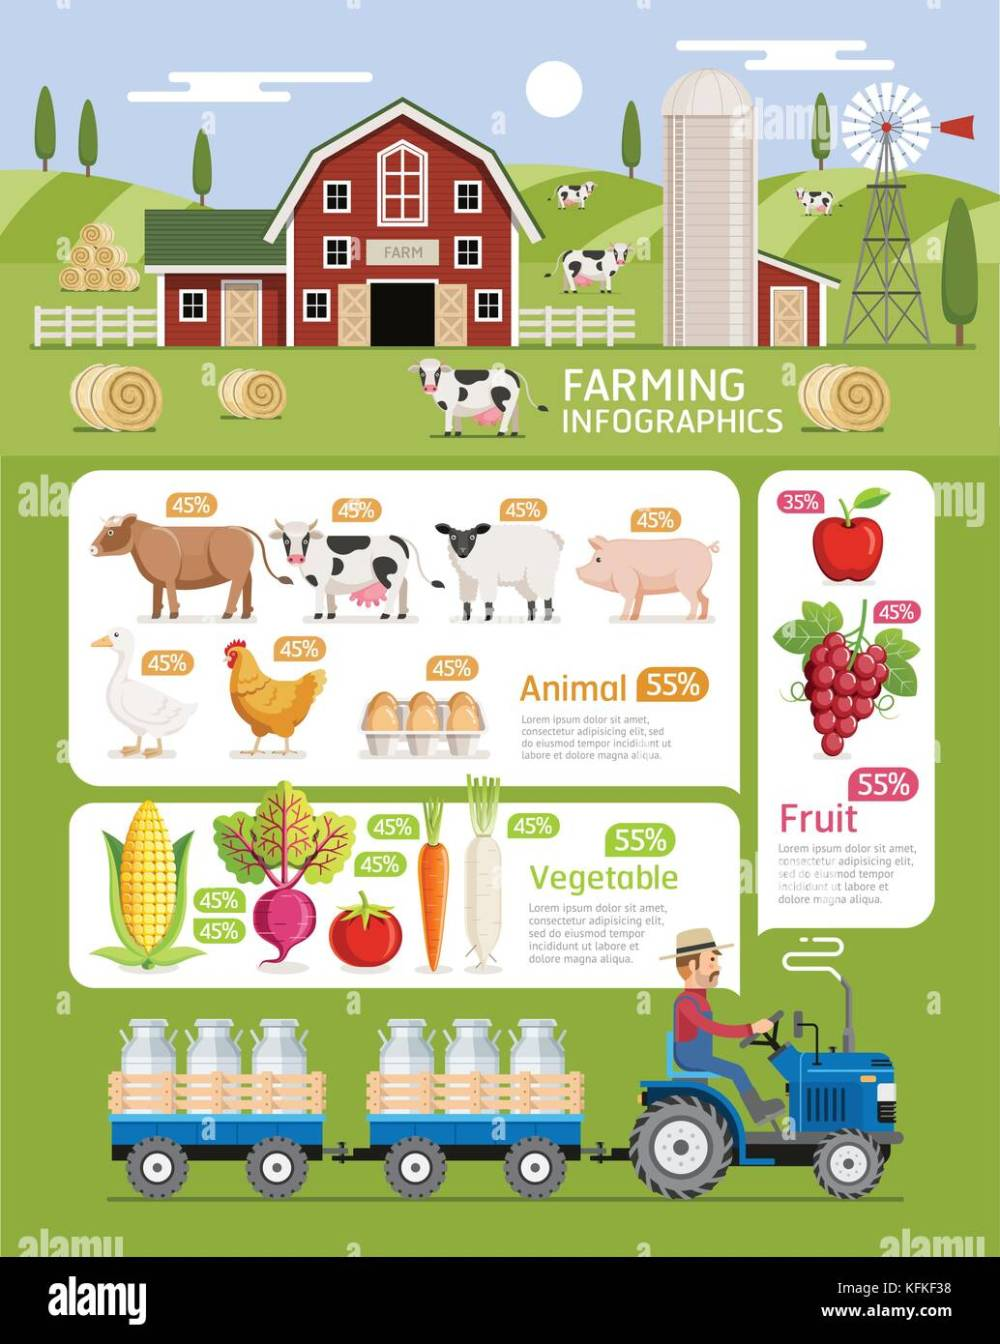 medium resolution of farming infographic elements template vector illustration can be used for workflow layout banner diagram web designs